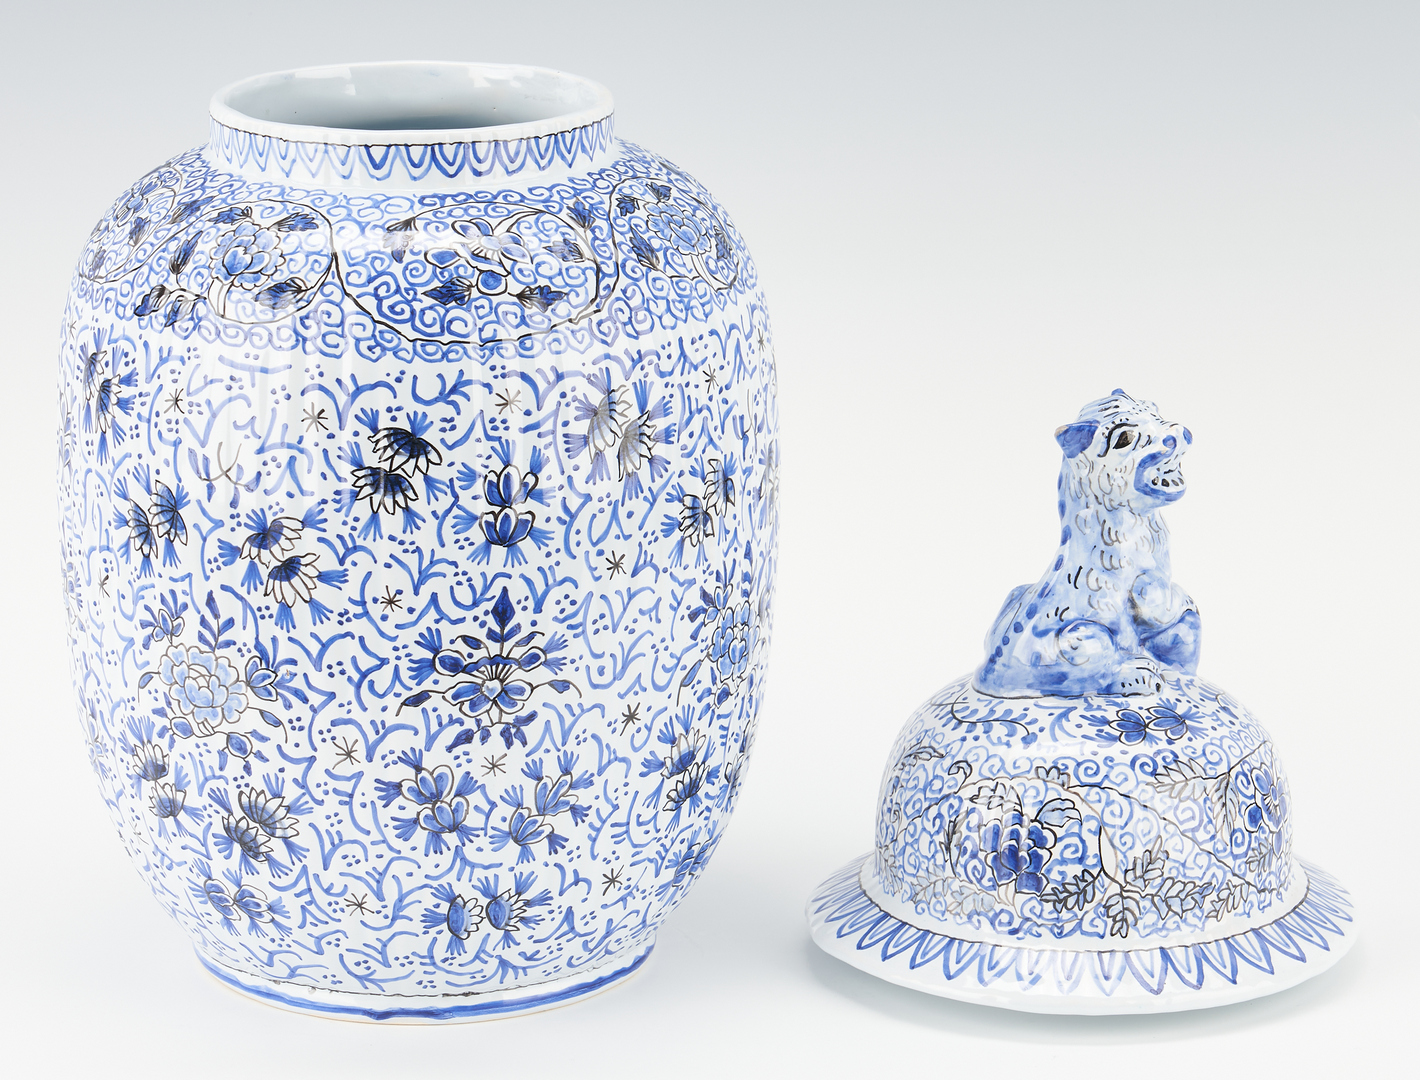 Lot 347: 2 Chinese Style Porcelain Vases, Cartier and Tiffany